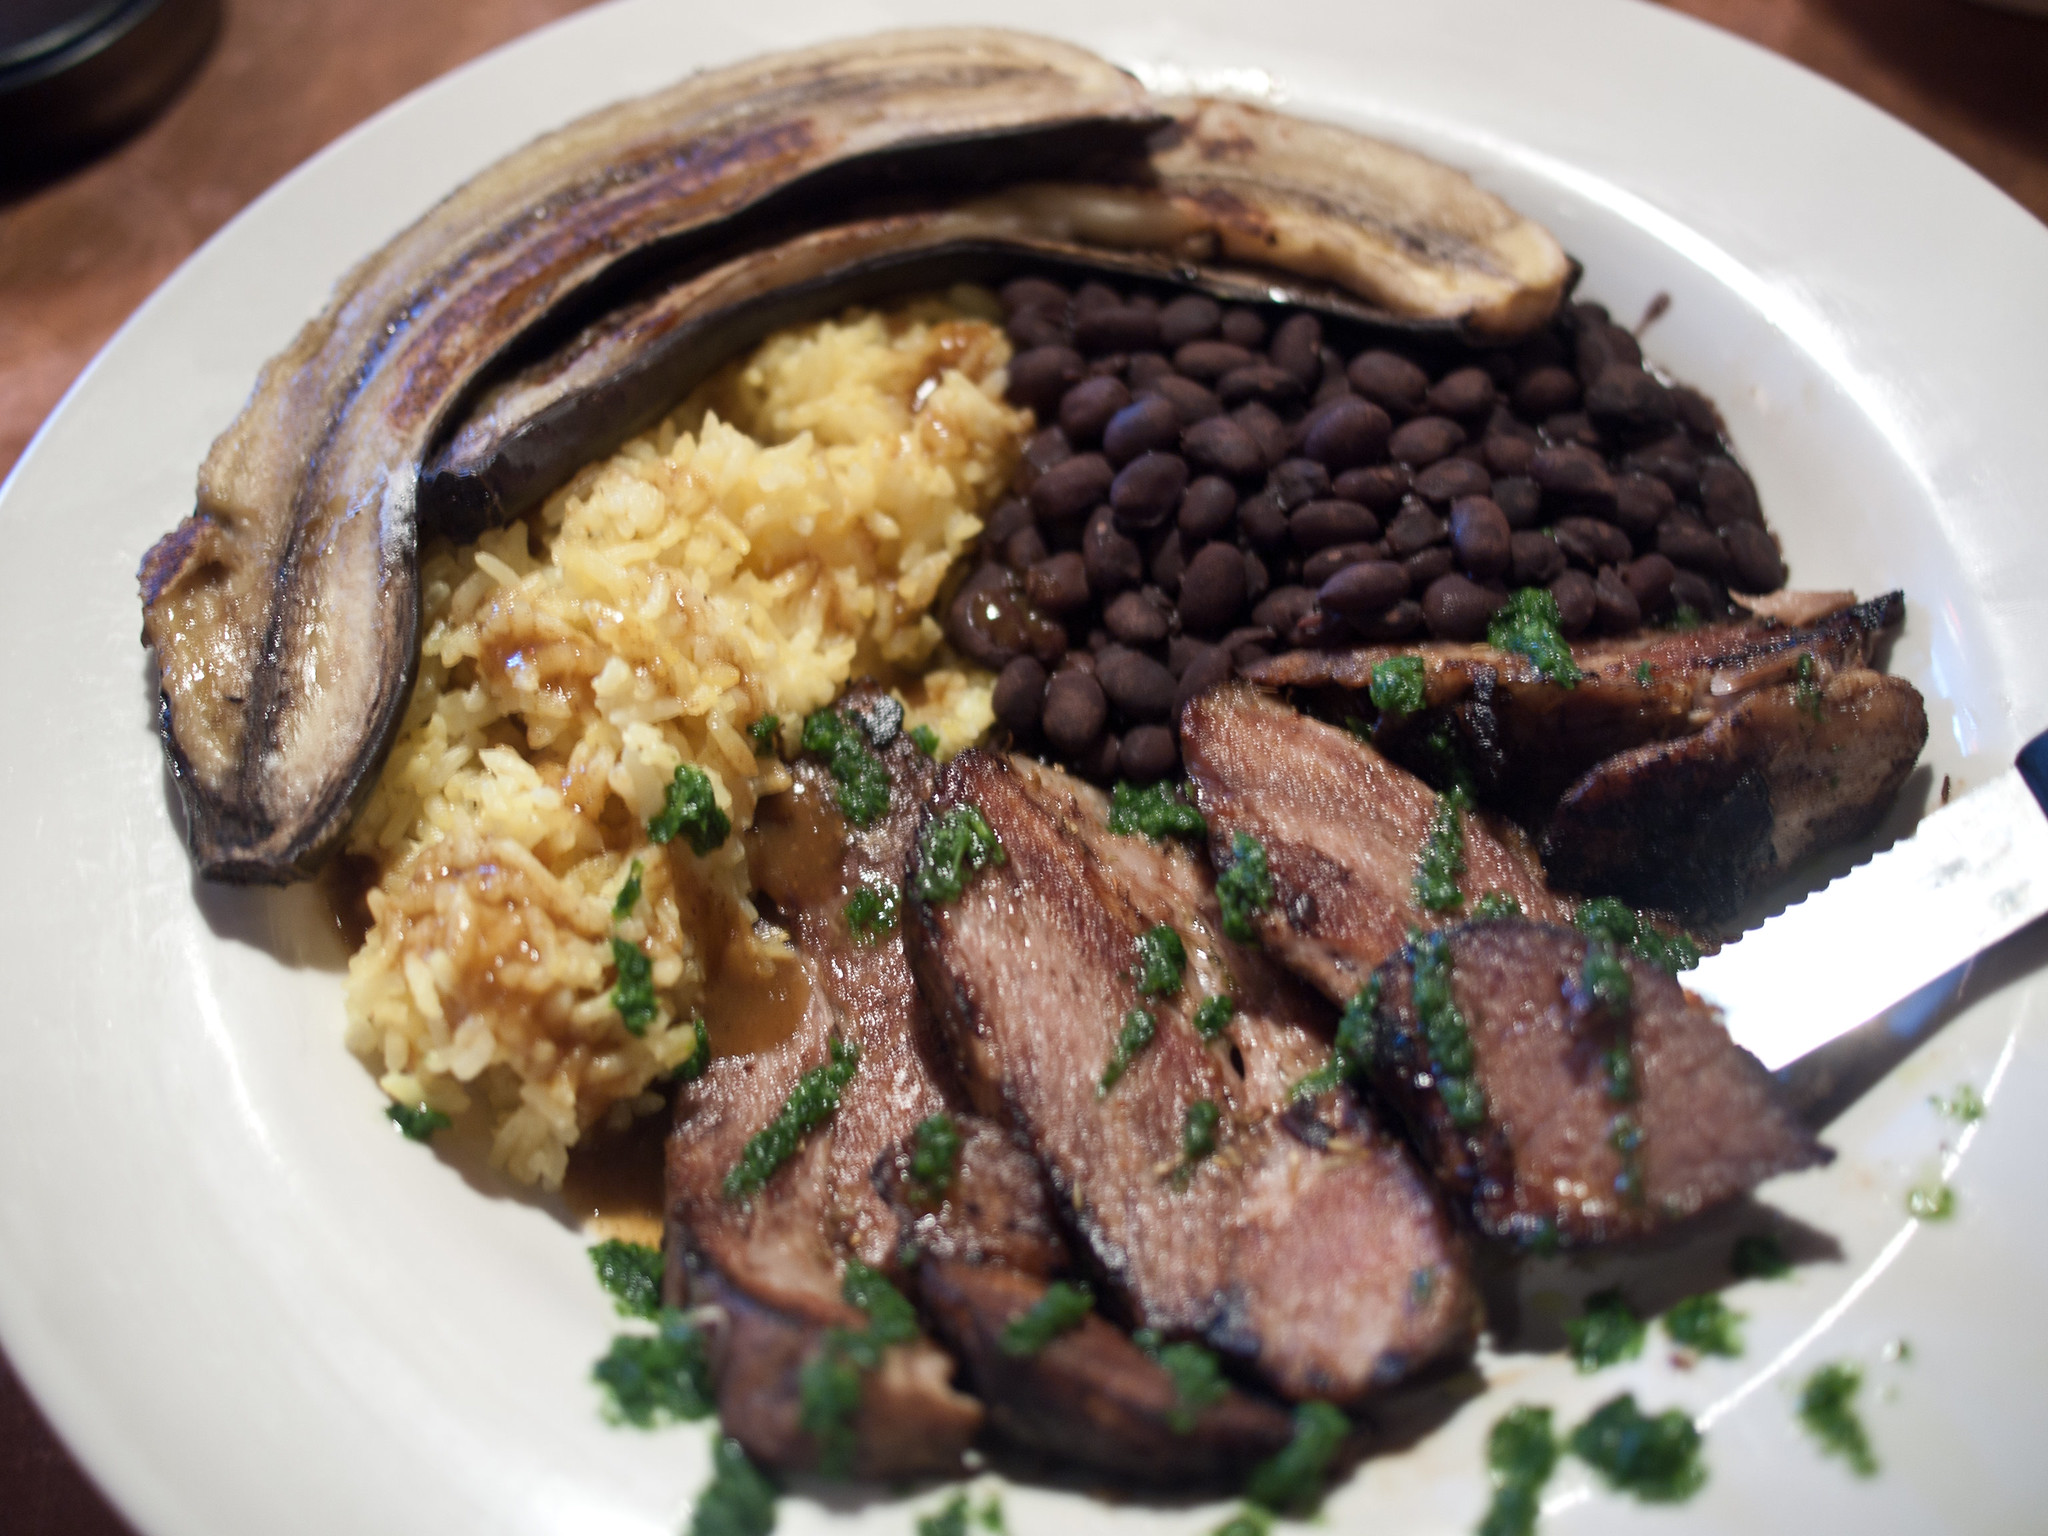 Anthony Bourdain Cuba - Cuban Pork with Black Beans and Rice - photo by Edsel Little under CC BY-SA 2.0